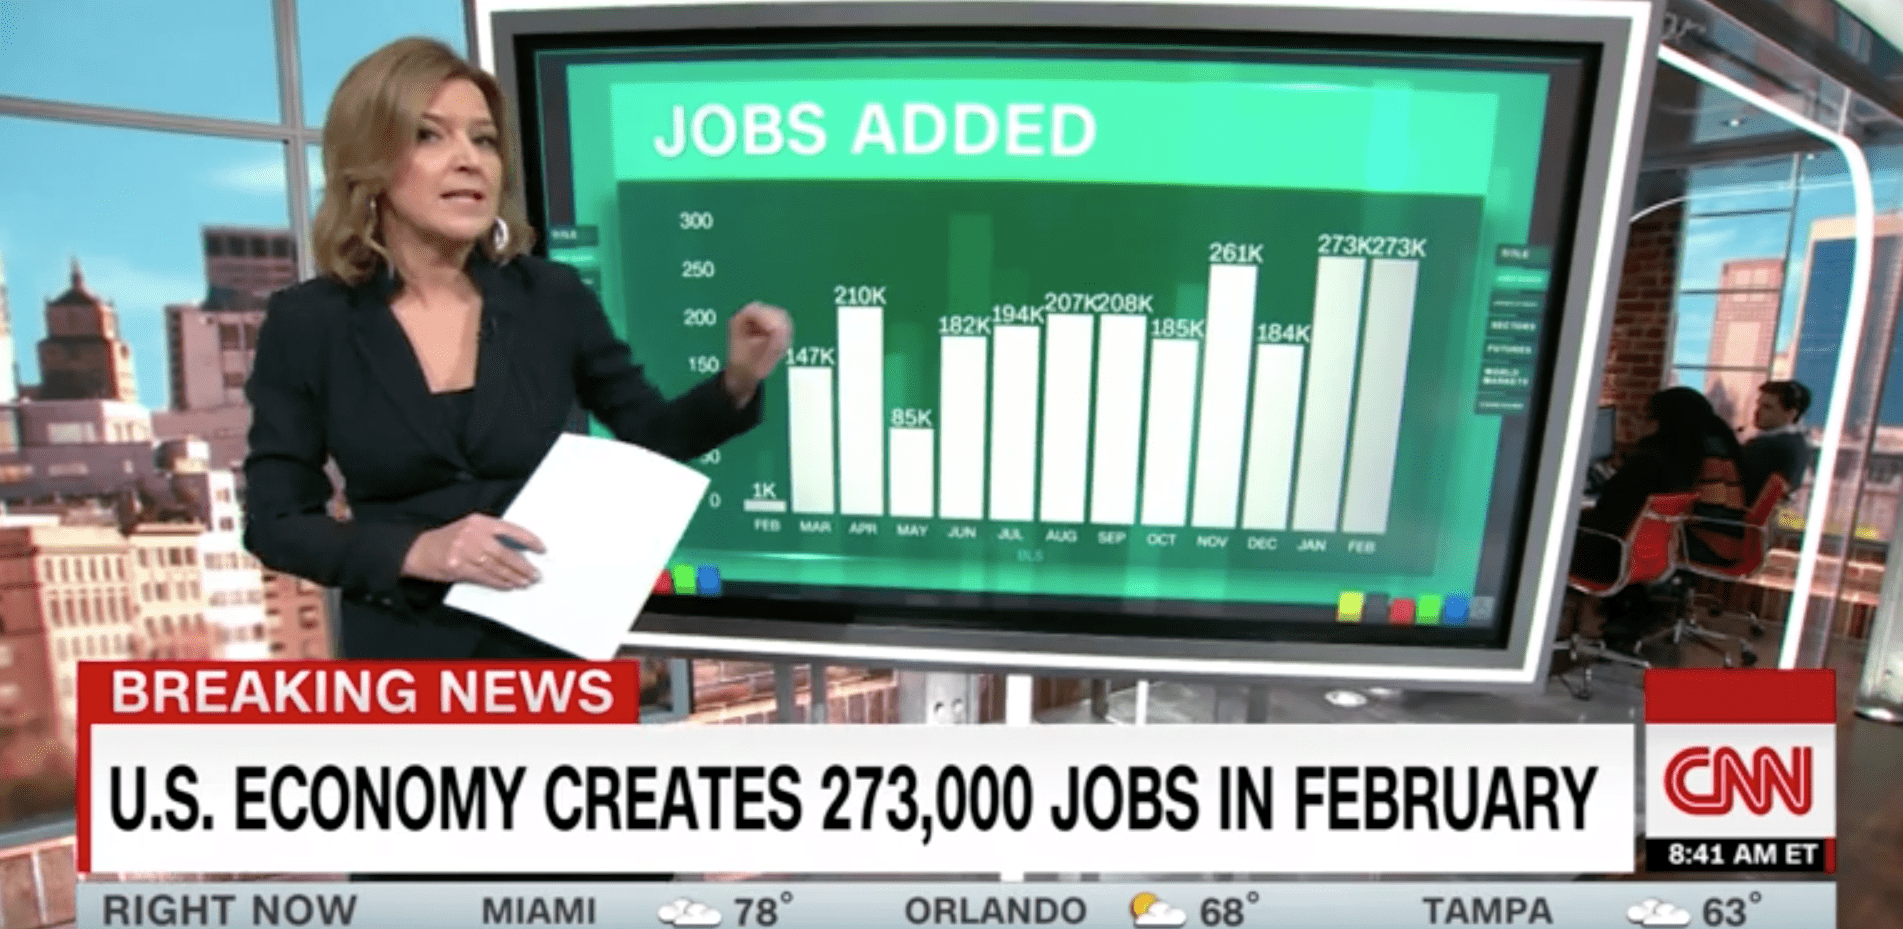 U.S. Adds 273,000 Jobs as Economy Braces for COVID-19 Impacts